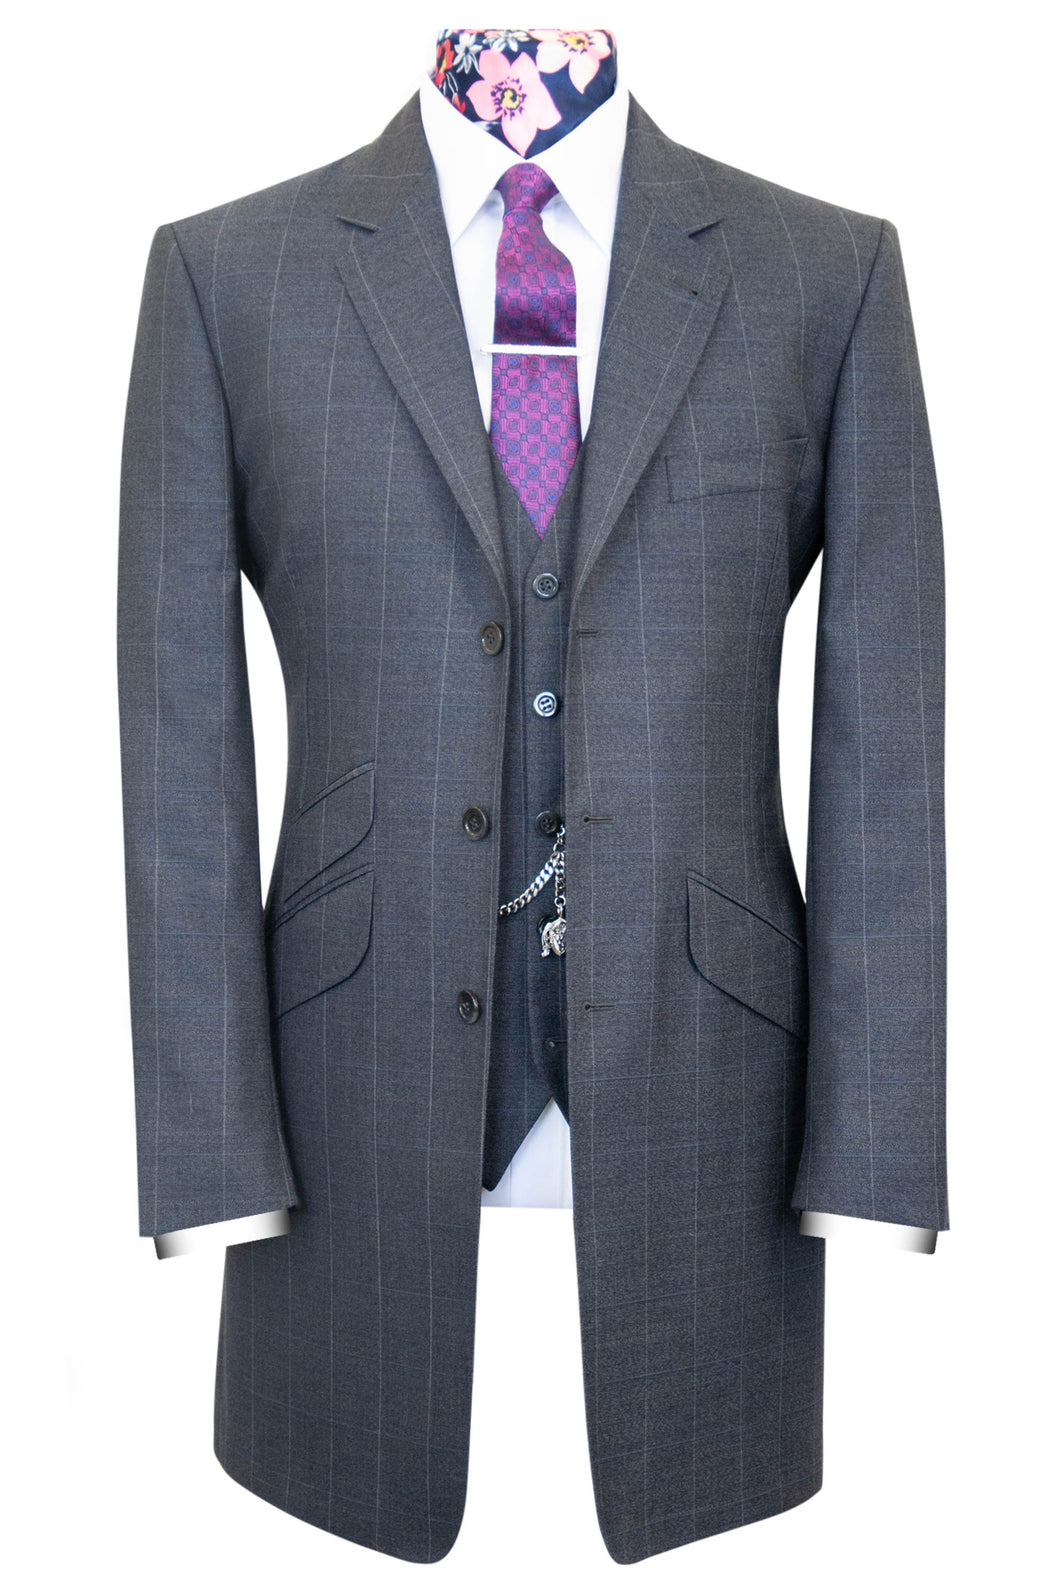 The Bell Grey Long Jacket Suit with White Windowpane Check